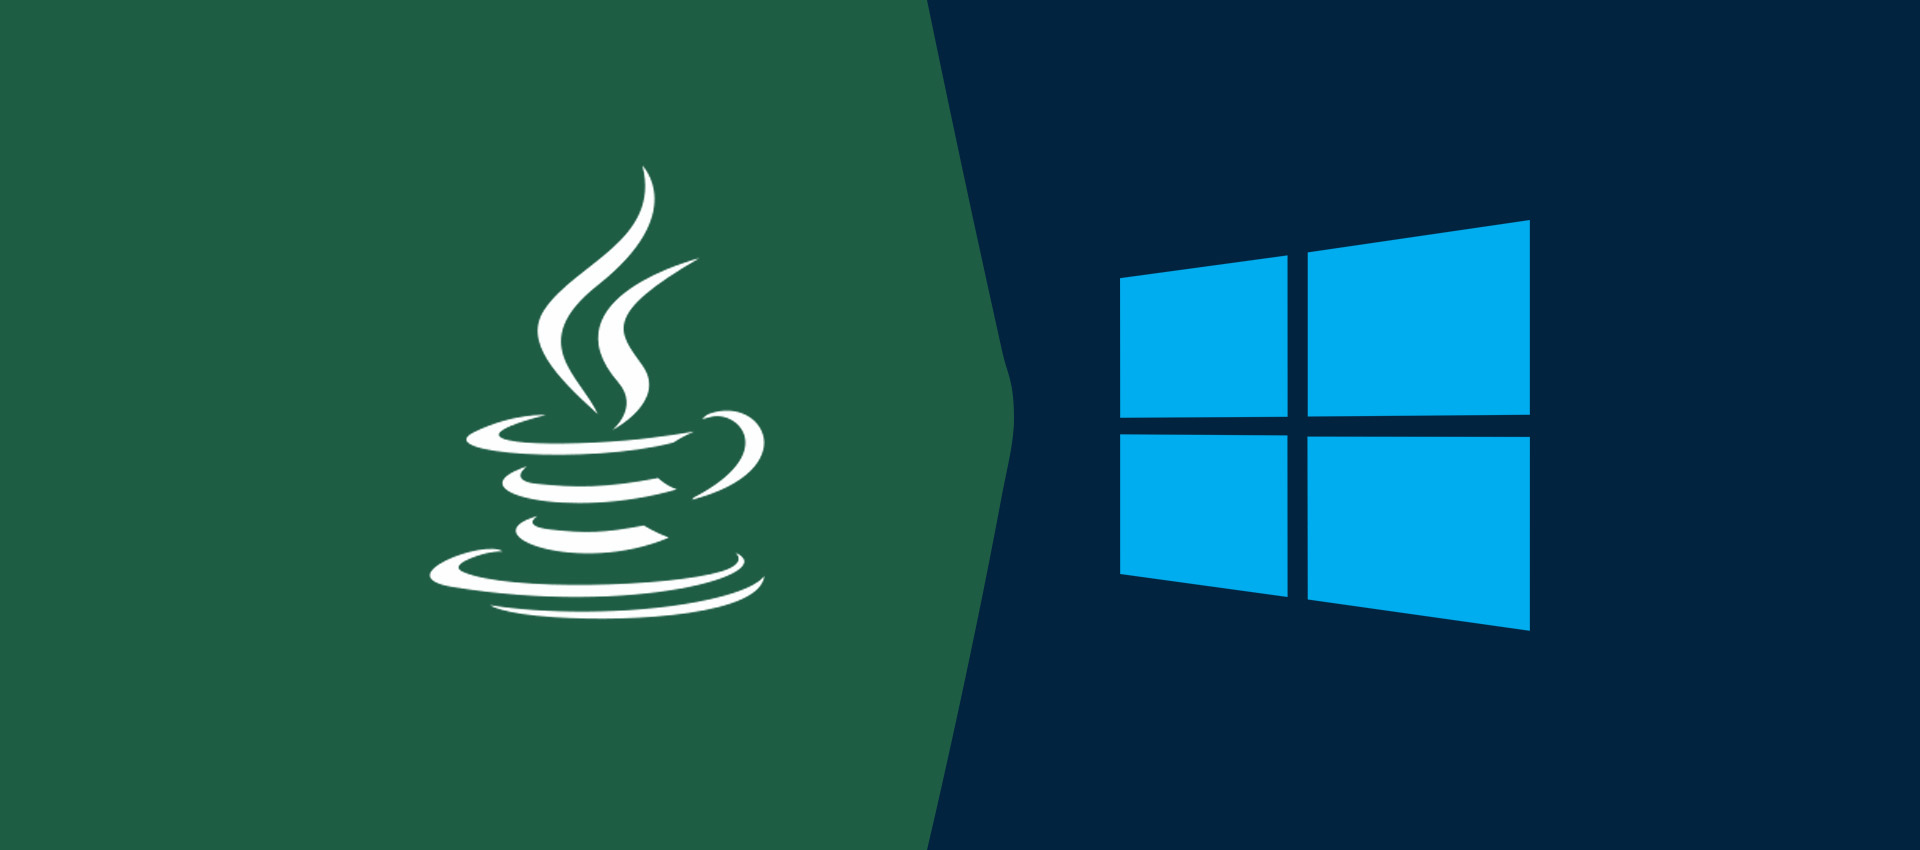 How To Install Java 14 On Windows